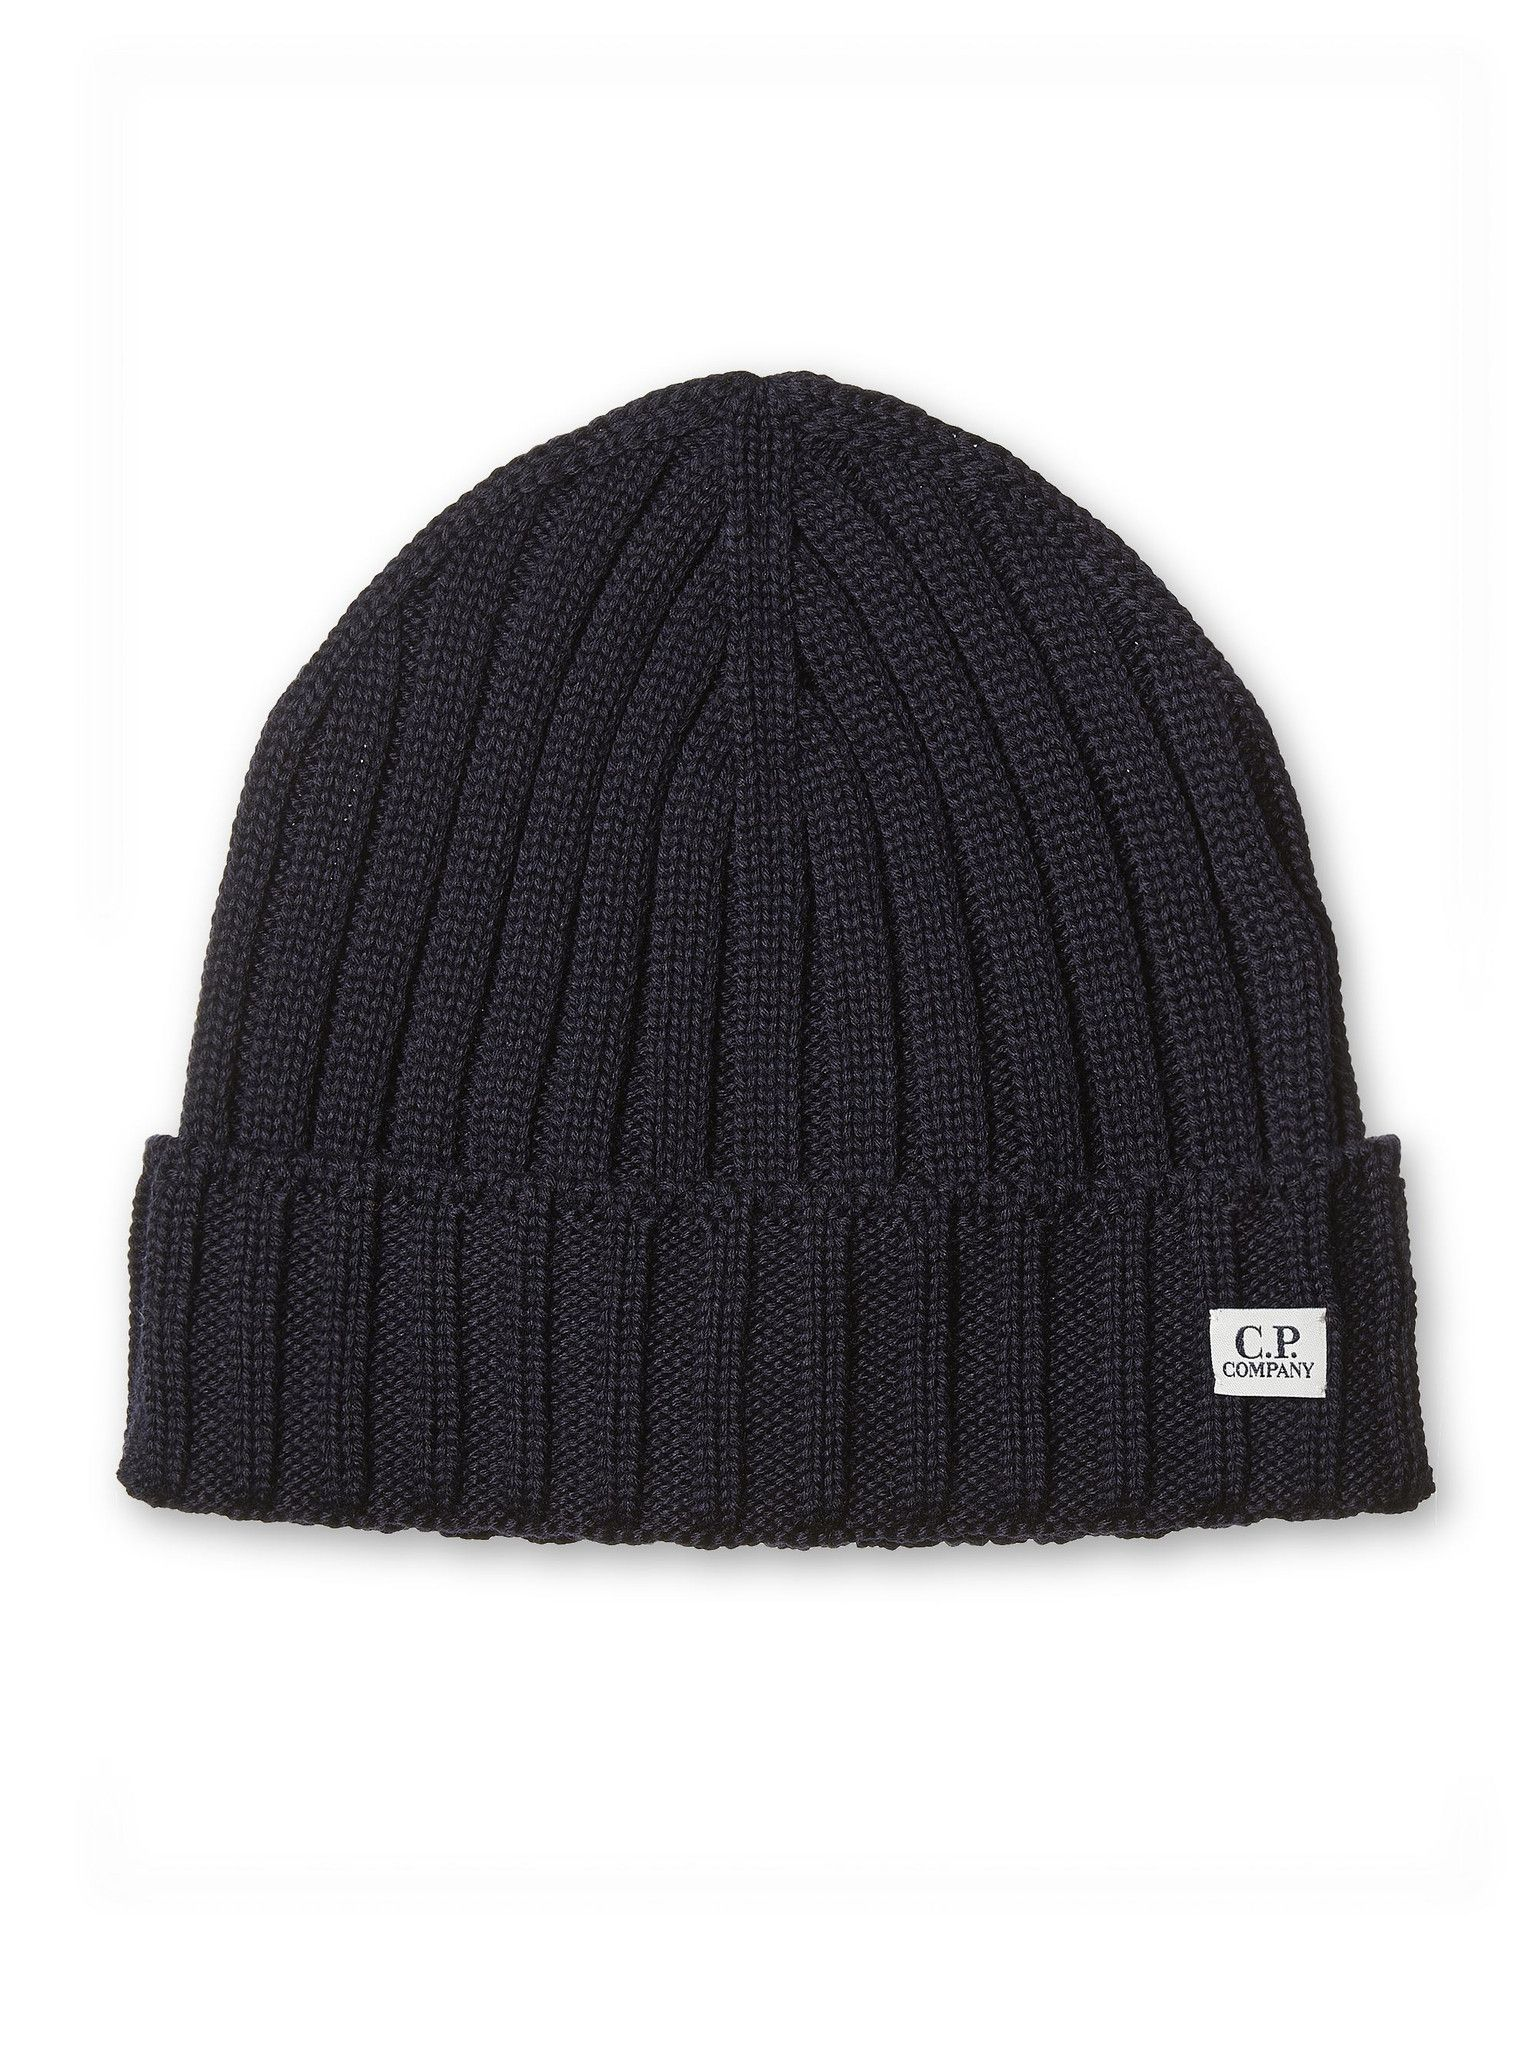 aab0adf59 C.P. Company Extrafine Merino Wool Beanie Hat in Navy Blue | Accessories